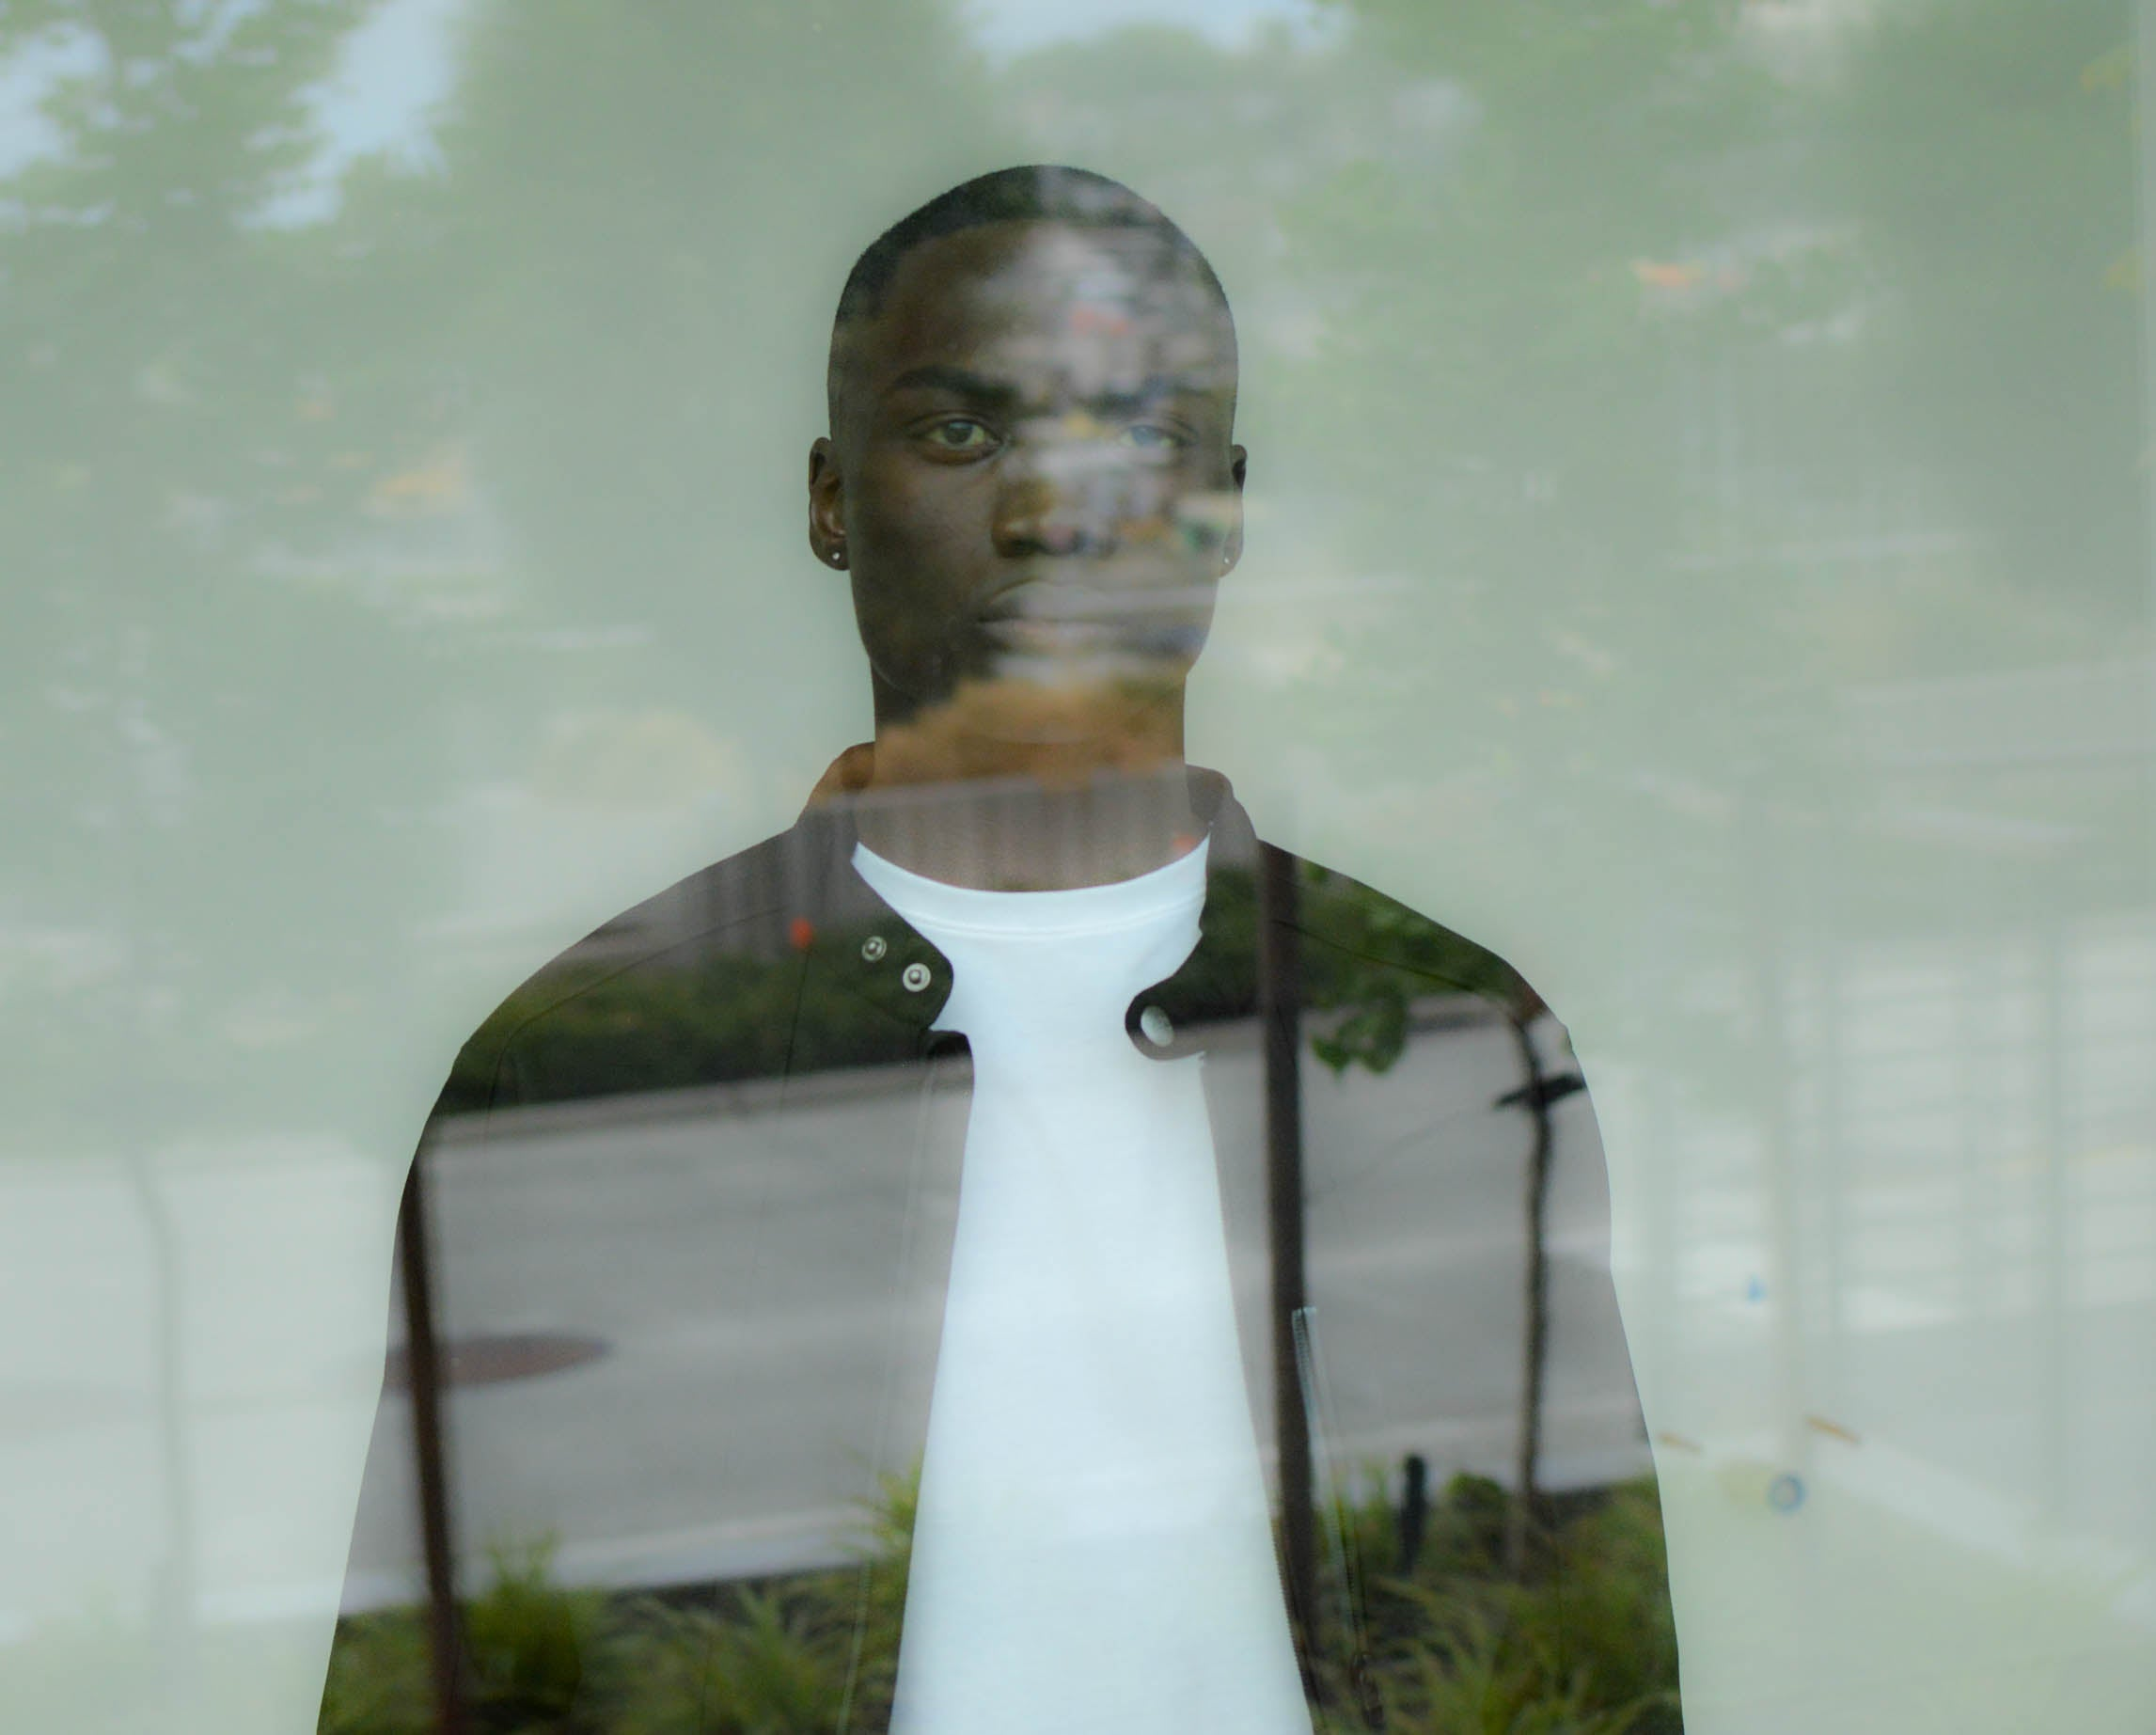 Double exposure seattle street photo by Gibran Hamdan Seattle based photographer